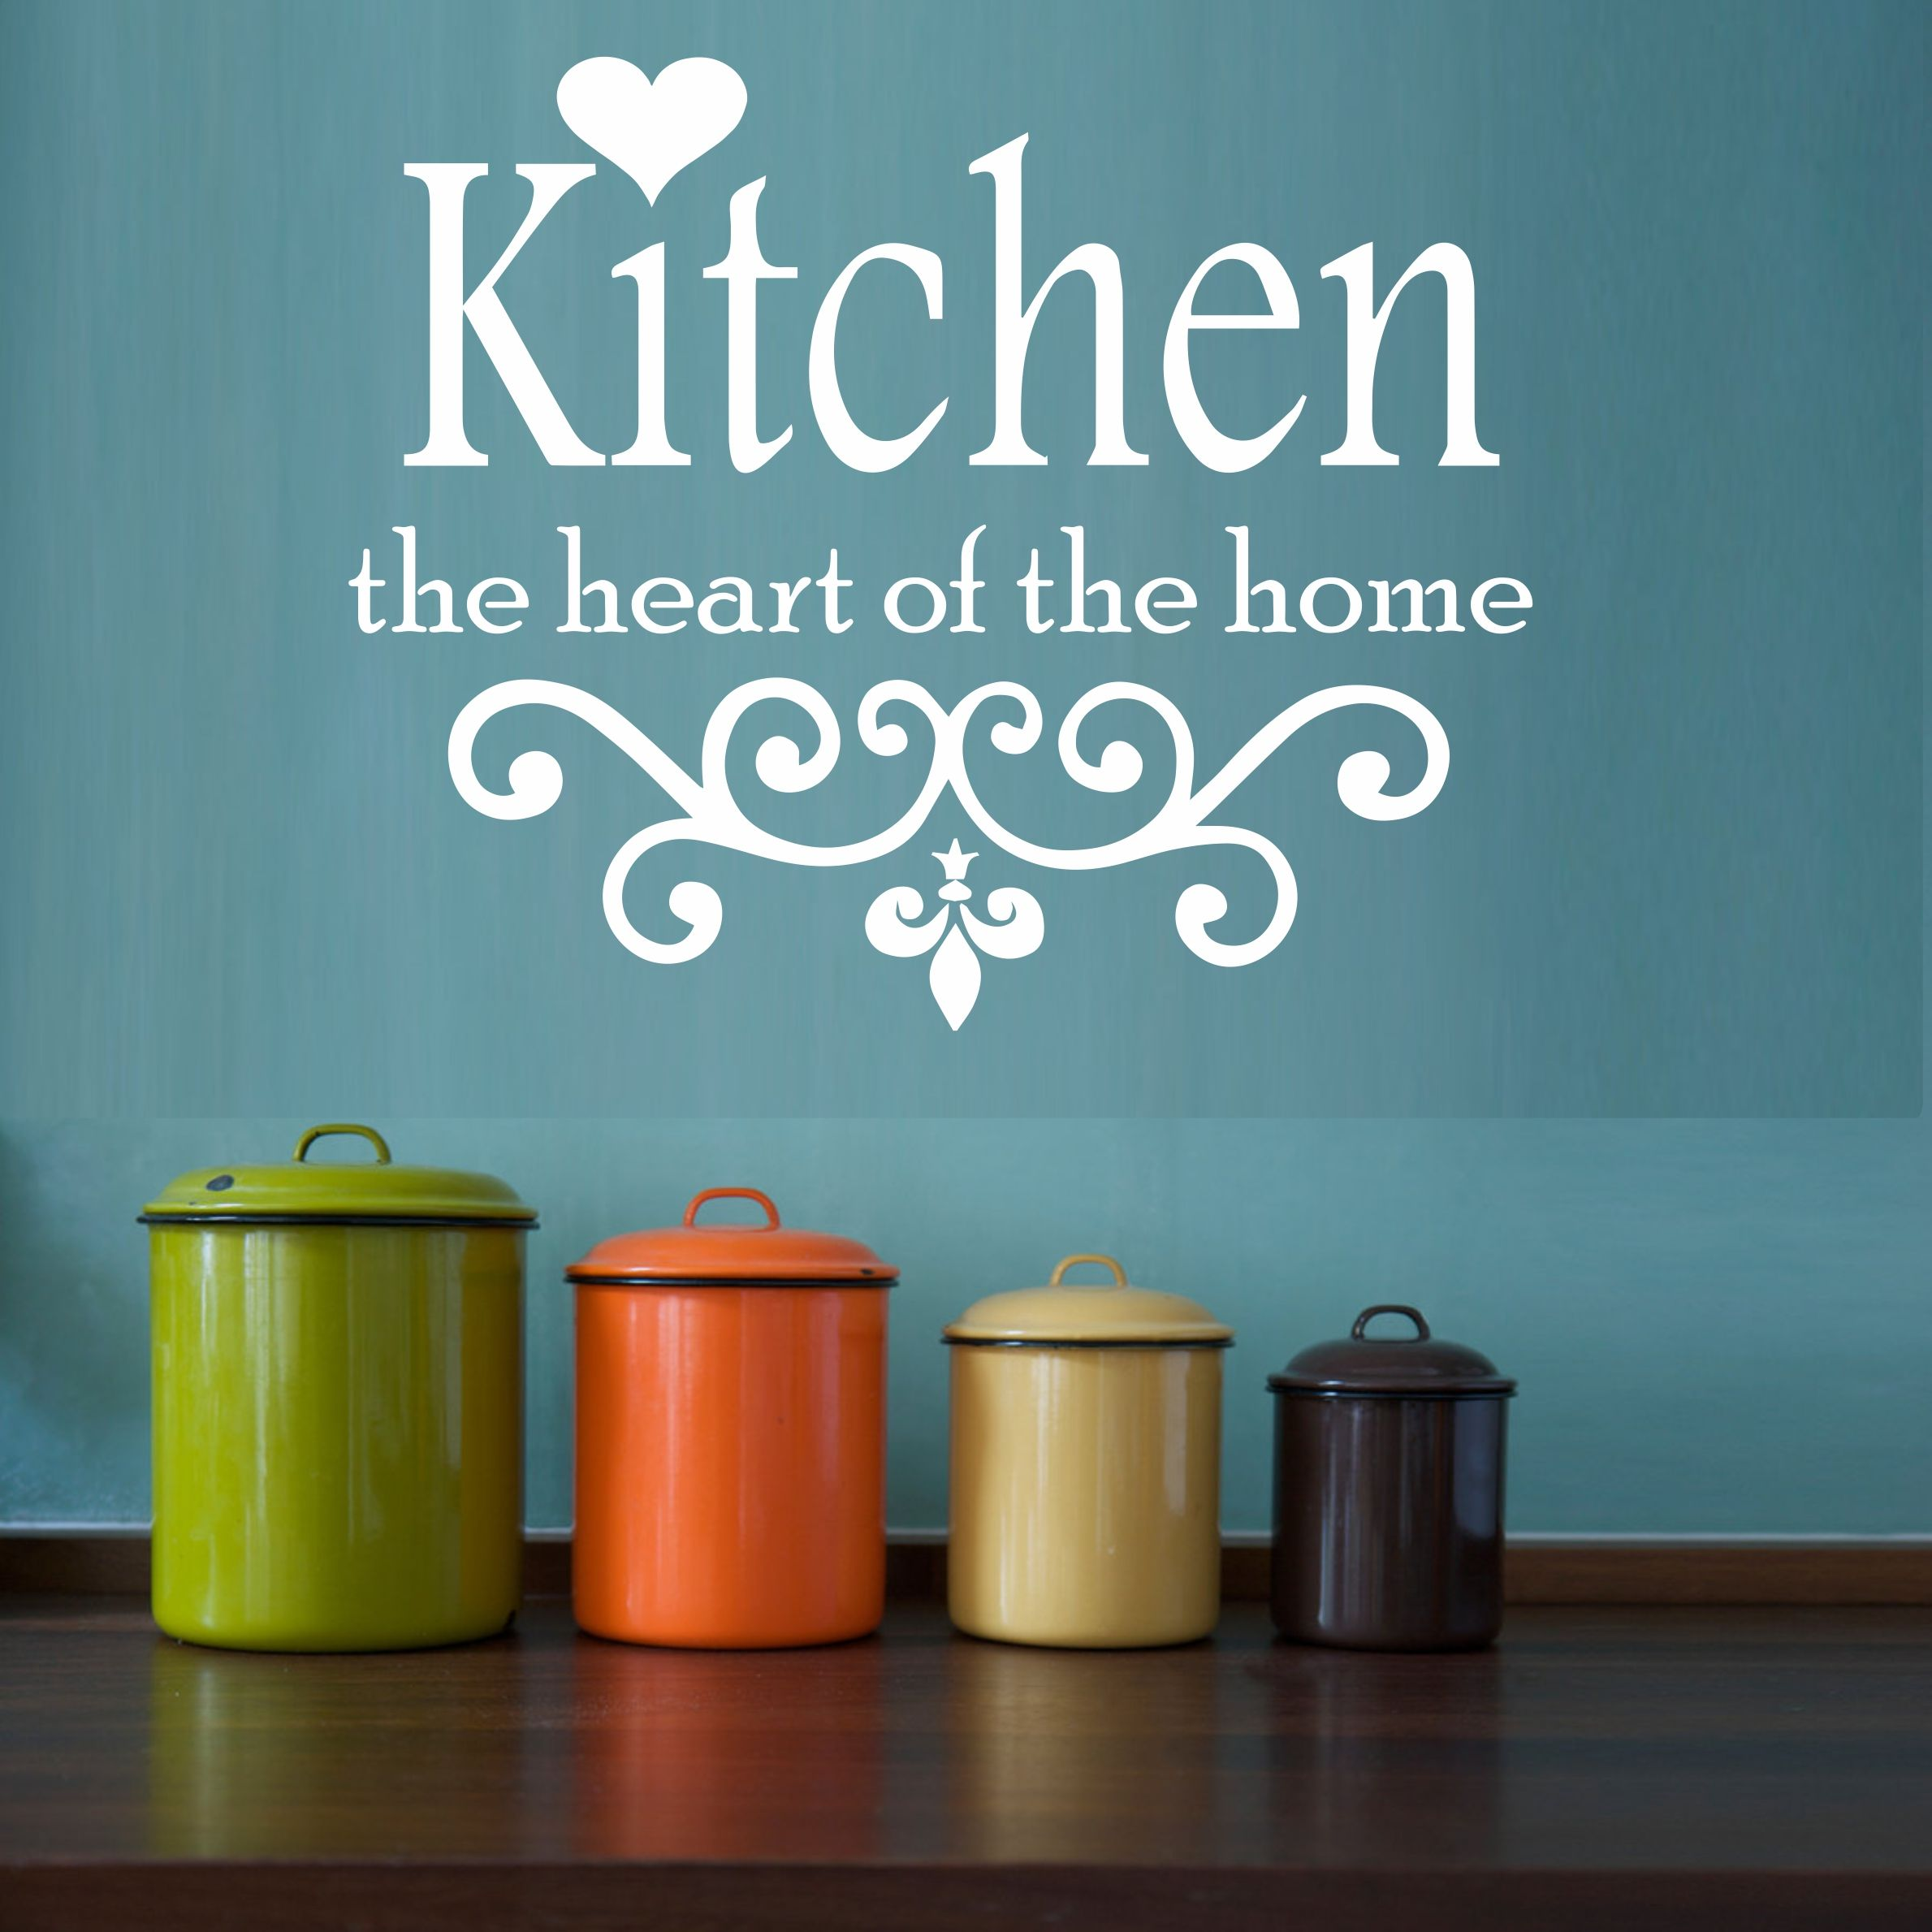 Kitchen Heart Of The Home Prepossessing Kitchen The Heart Of The Home  Home Design Decorating Inspiration